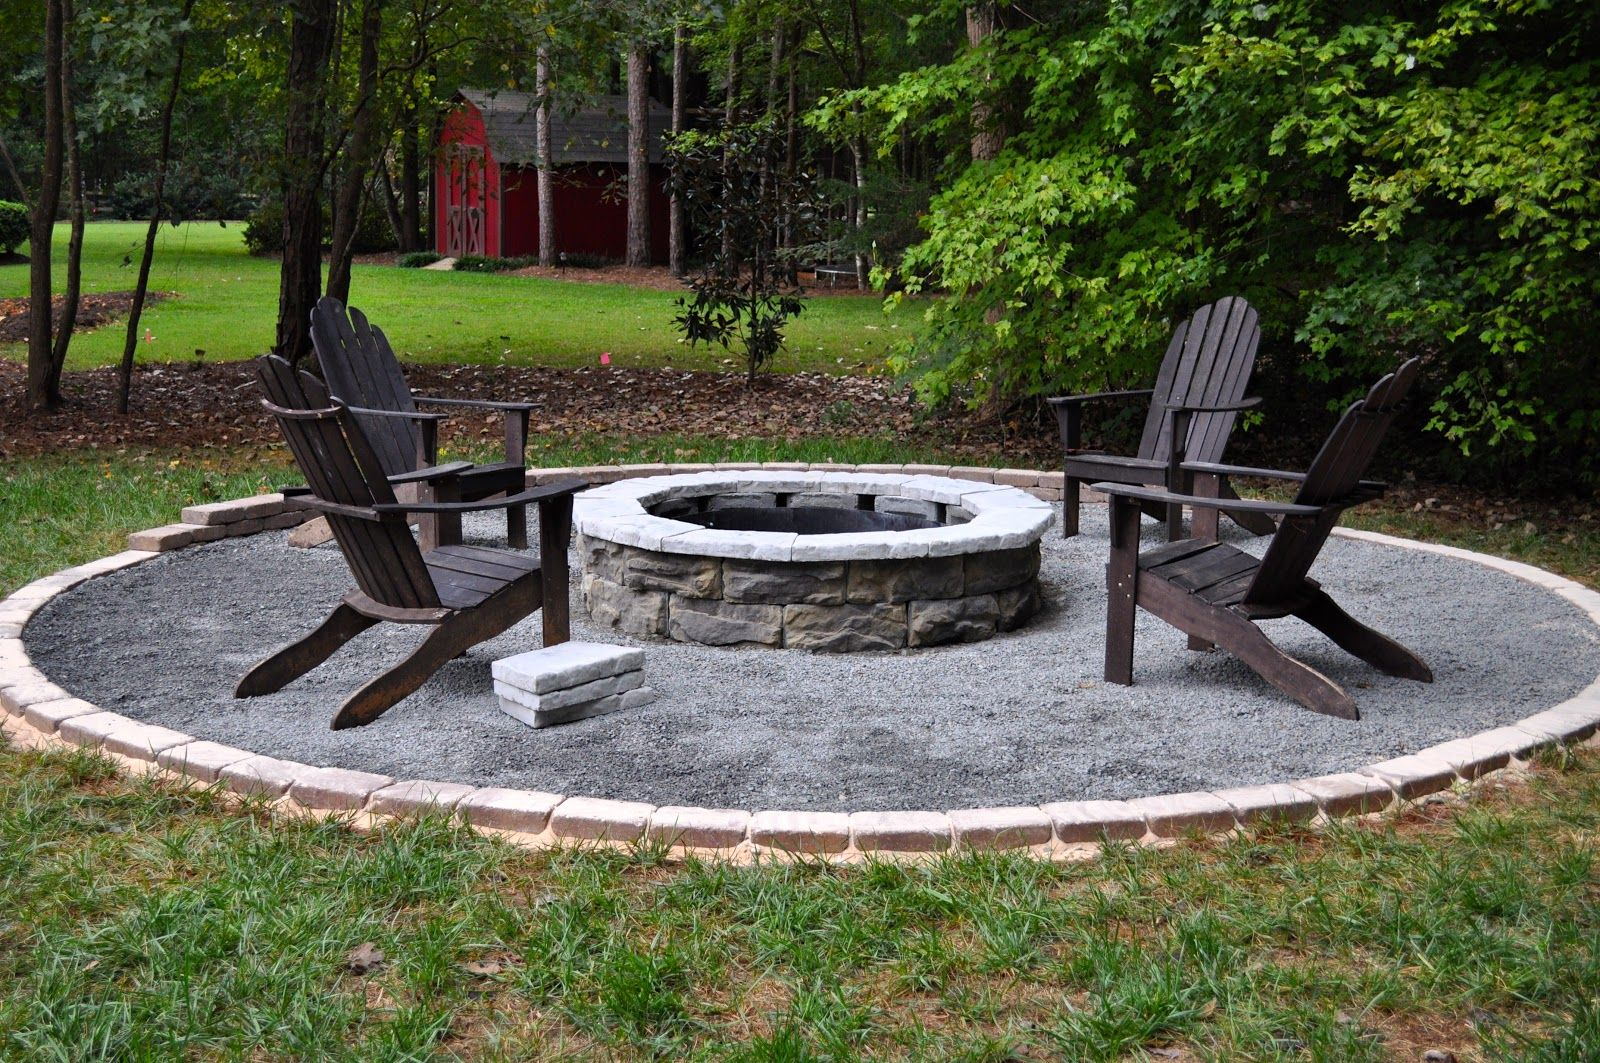 //www.findingfabulousblog.com/2012/09/affordable-fire-pit-area ... on color garden design, wall garden design, wood garden design, interior garden design, home garden design, office garden design, deck garden design, exterior home, curb appeal garden design, porch garden design, bathroom garden design, make garden design, industrial garden design, exterior garden window, entrance garden design, yard garden design, exterior cottage garden, furniture garden design, outdoor garden design, kitchen garden design,